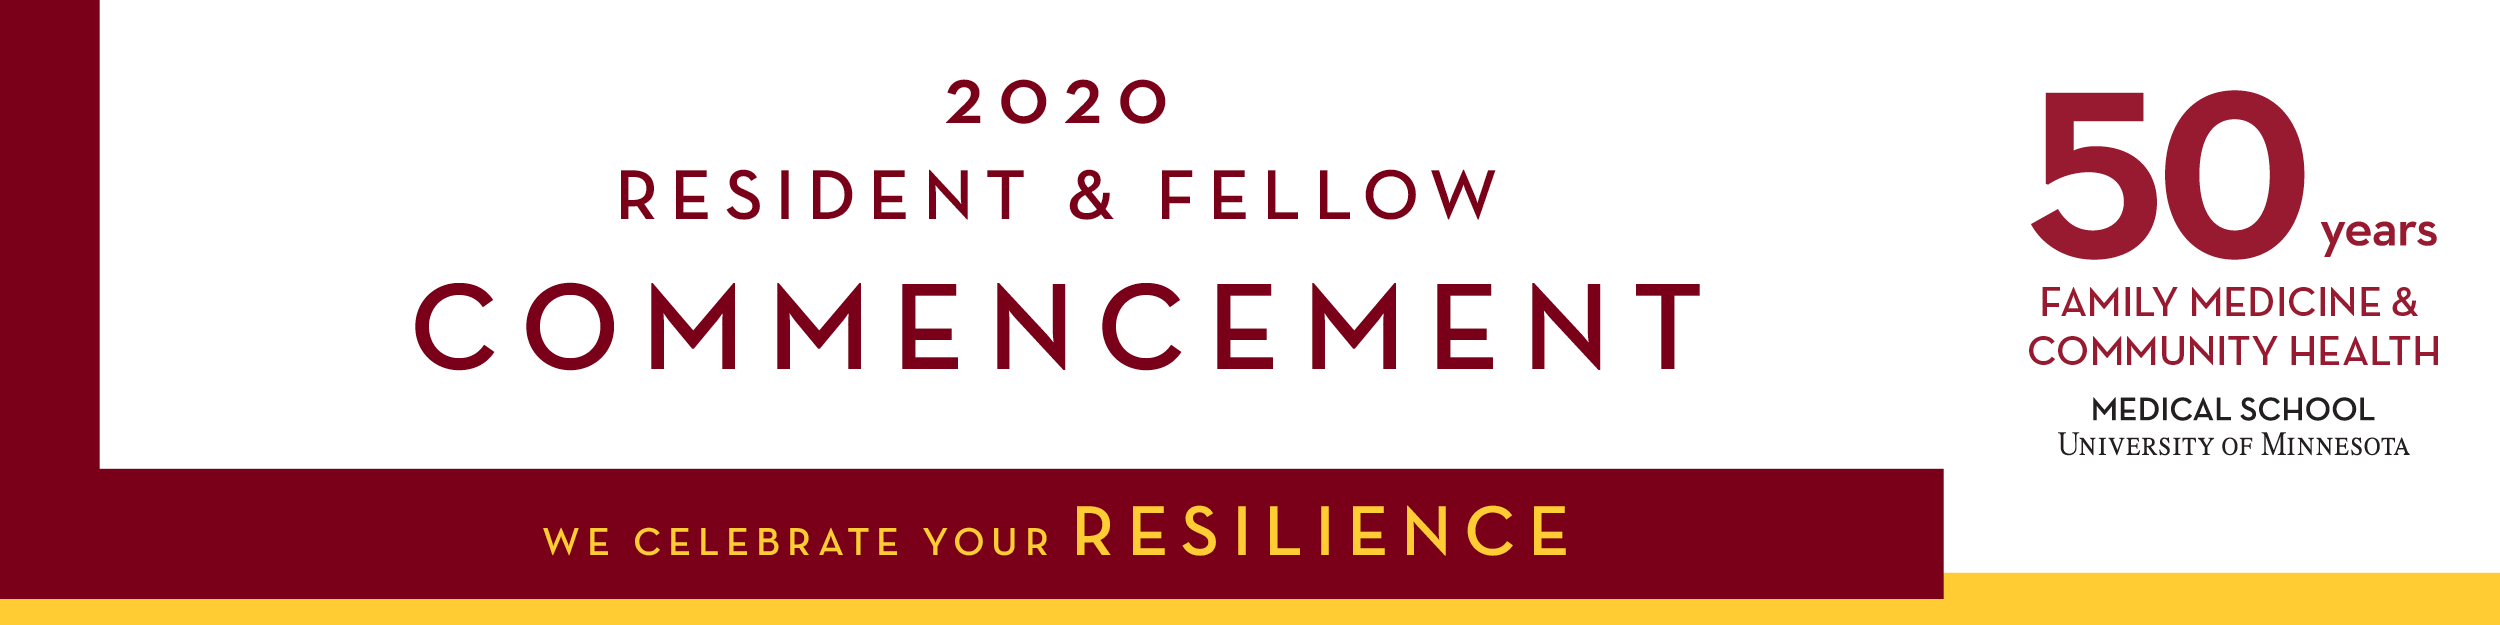 2020 resident and fellow commencement